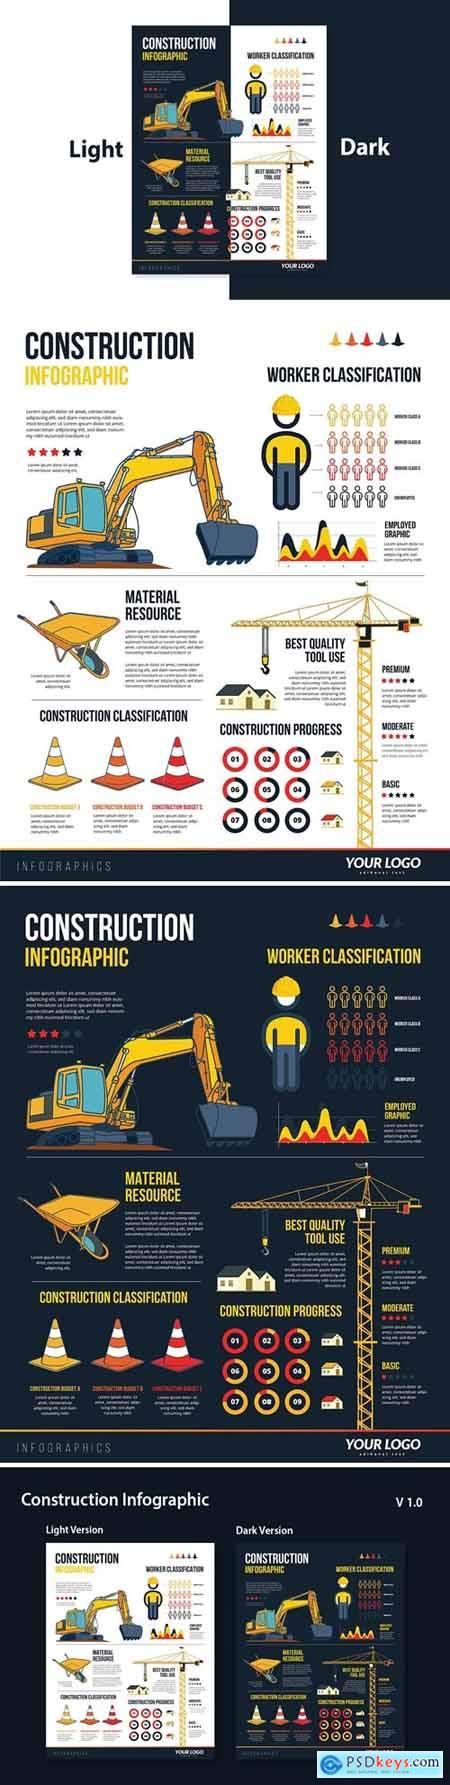 Infographic Elements for Construction Building